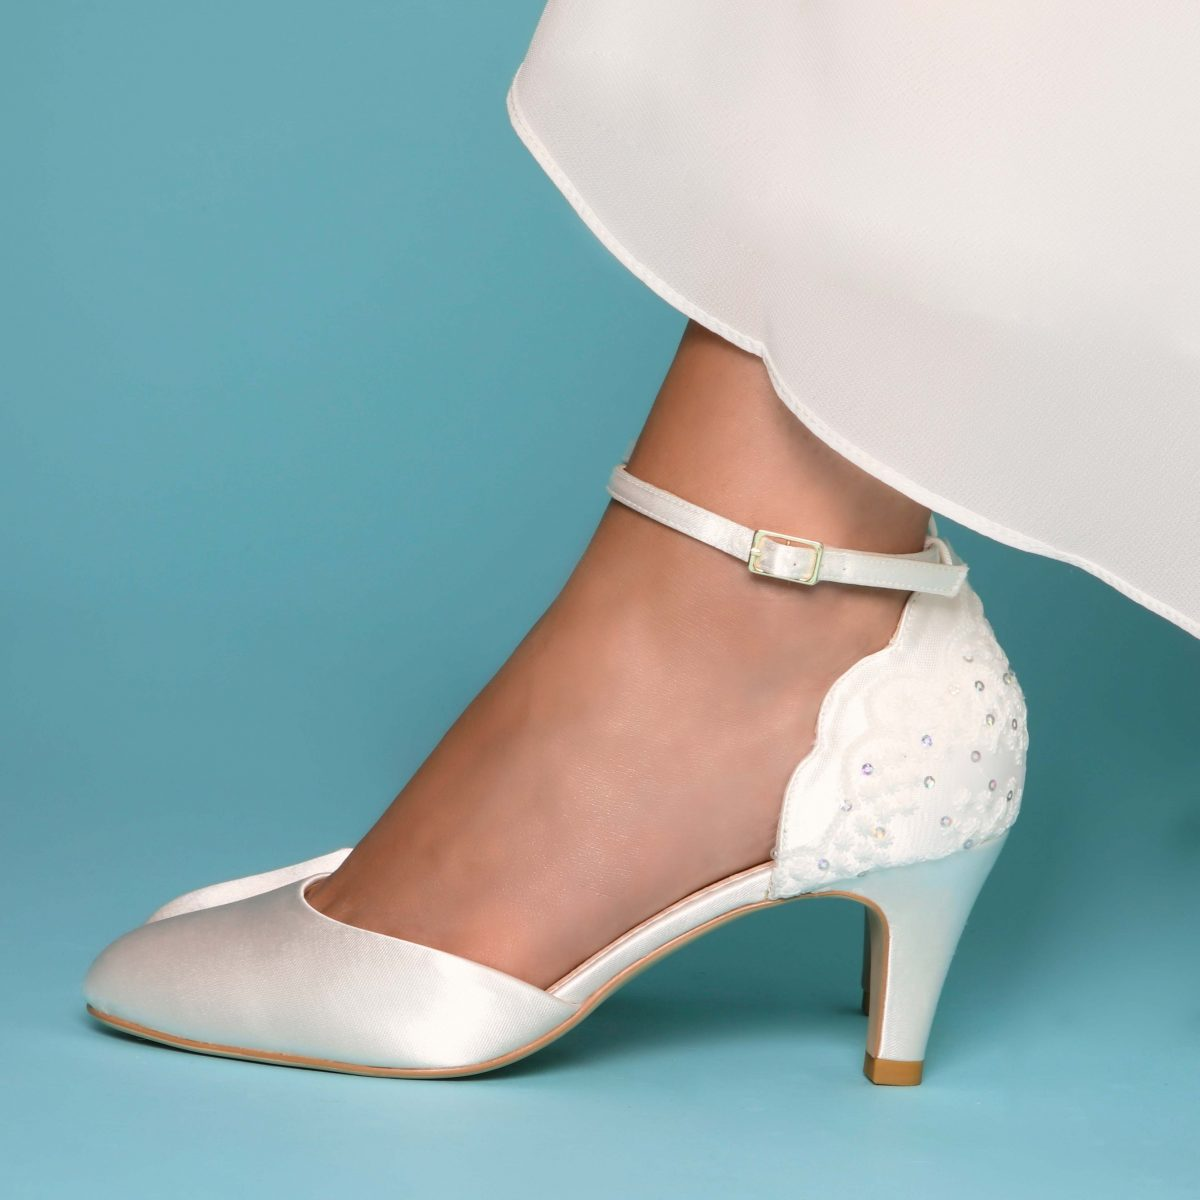 Perfect Bridal Clara Shoes - Ivory Satin 1